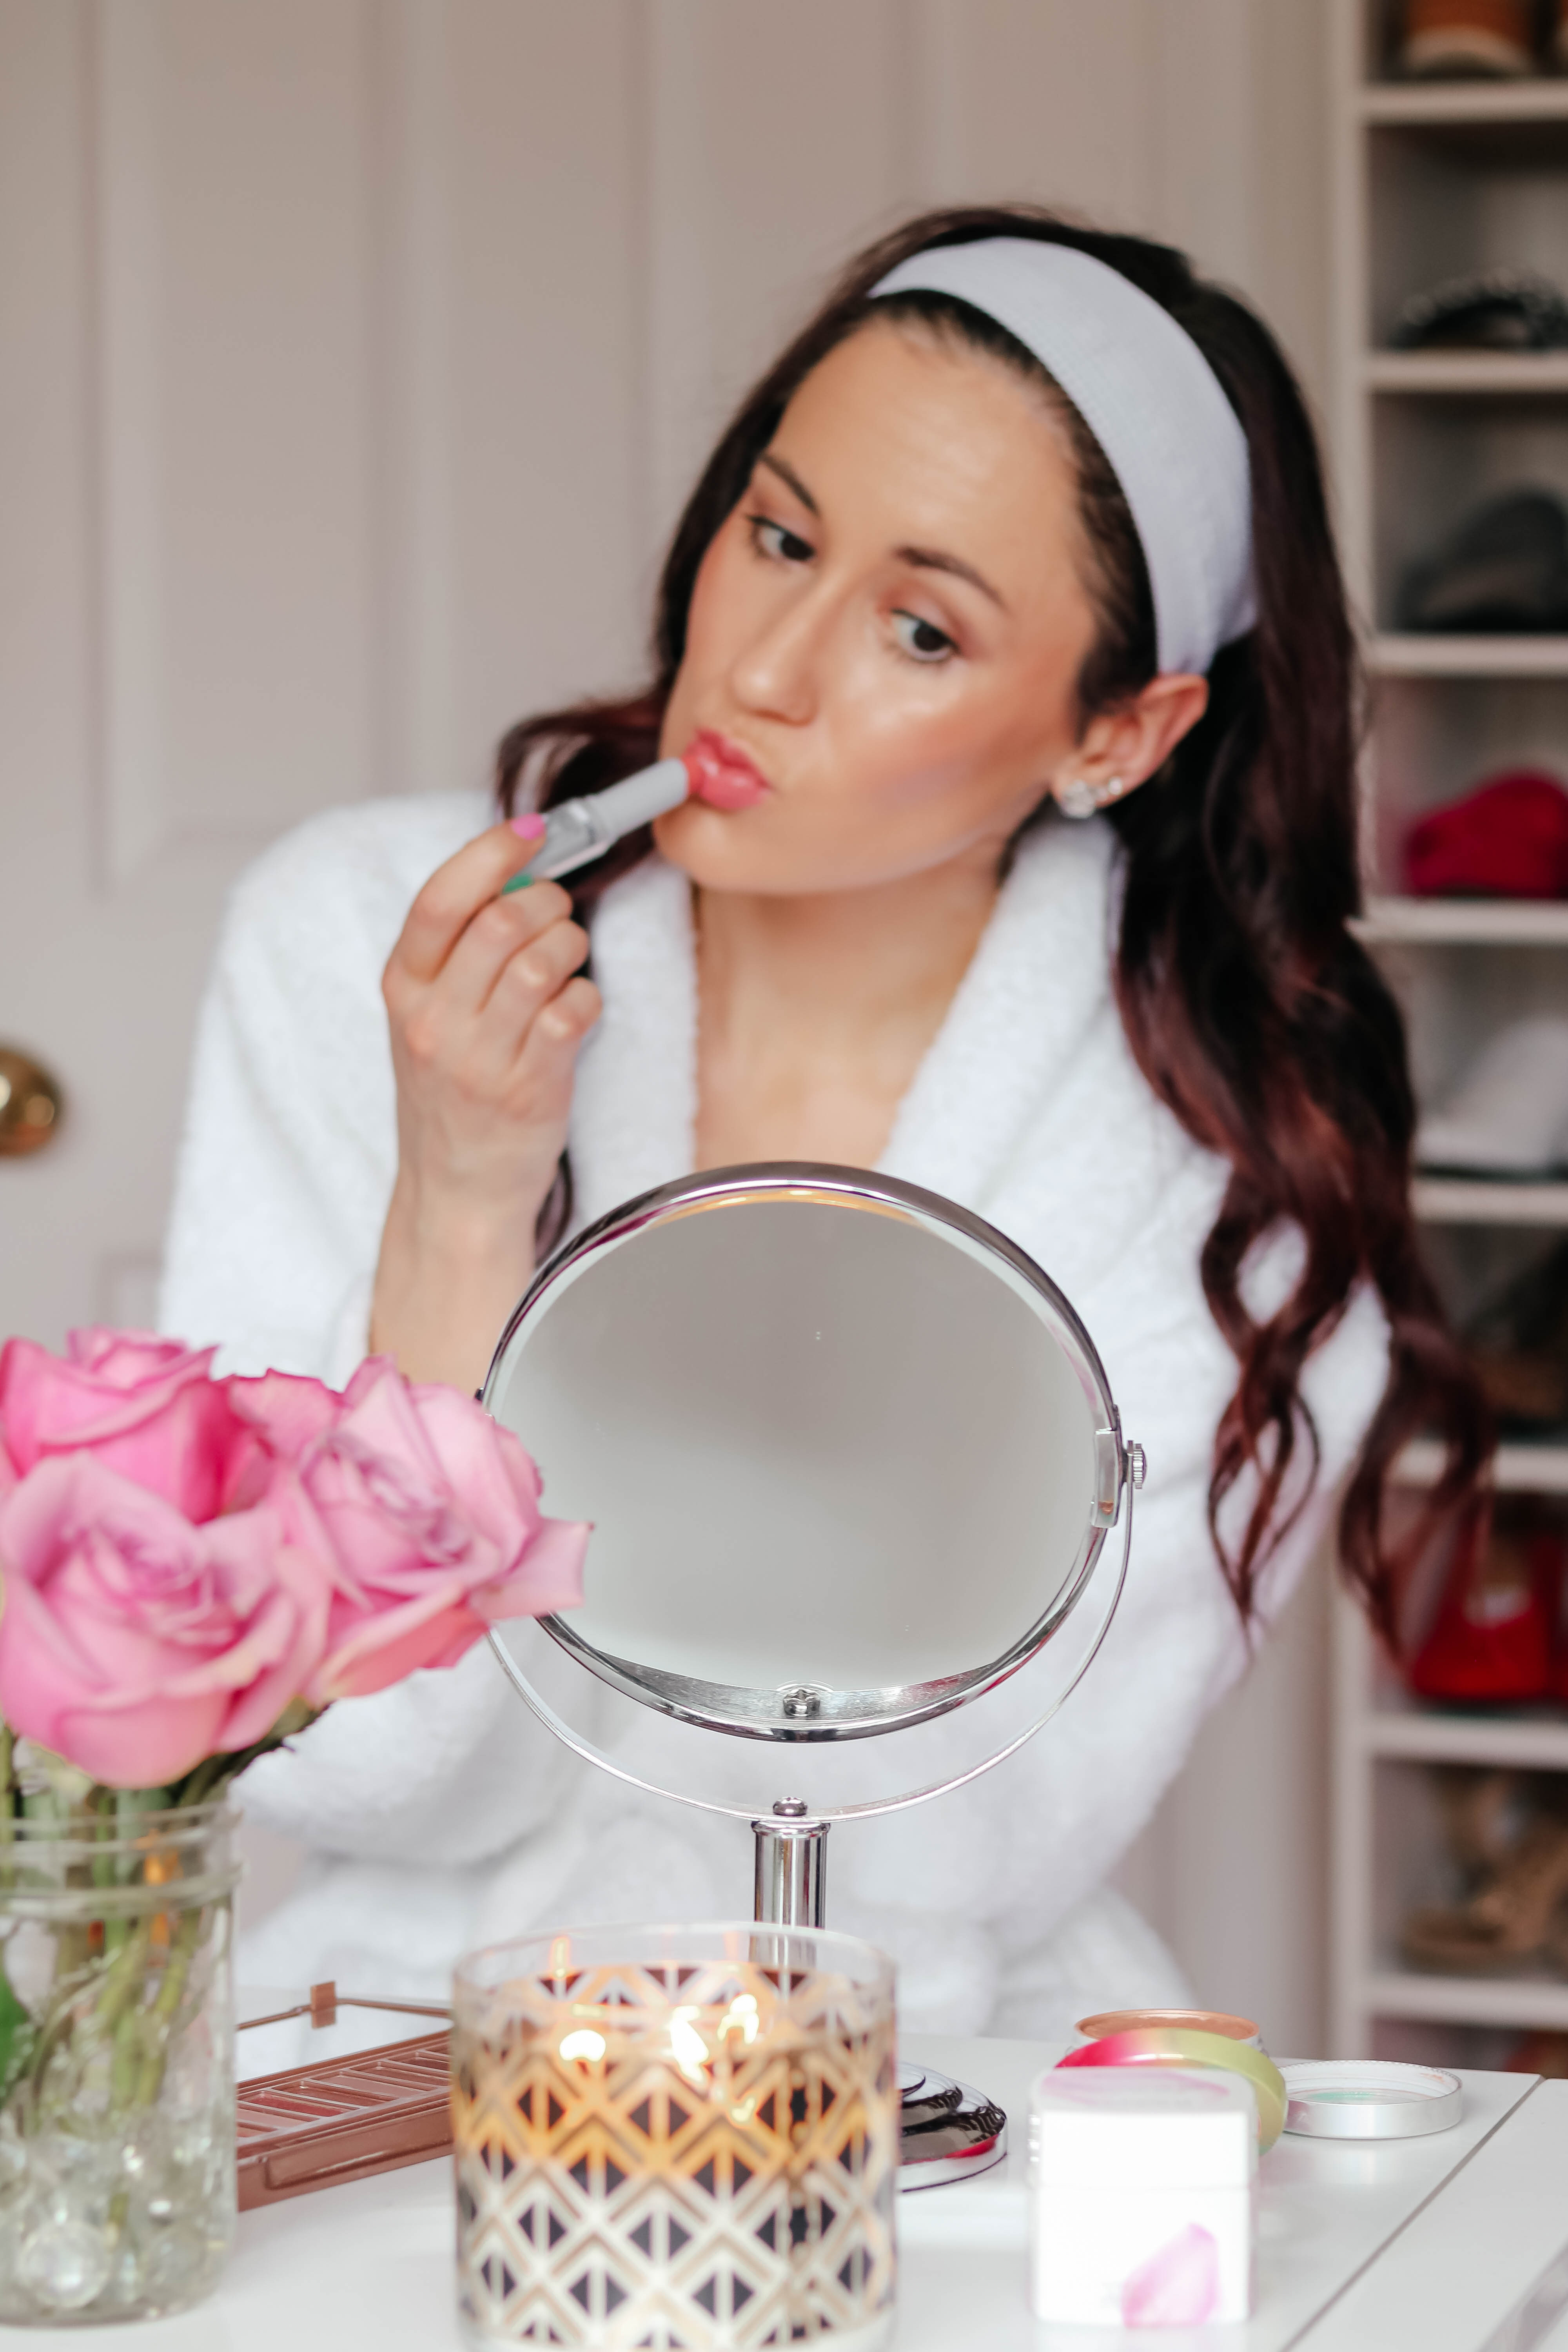 All Day Glow with Physicians Formula Rosé All Day line